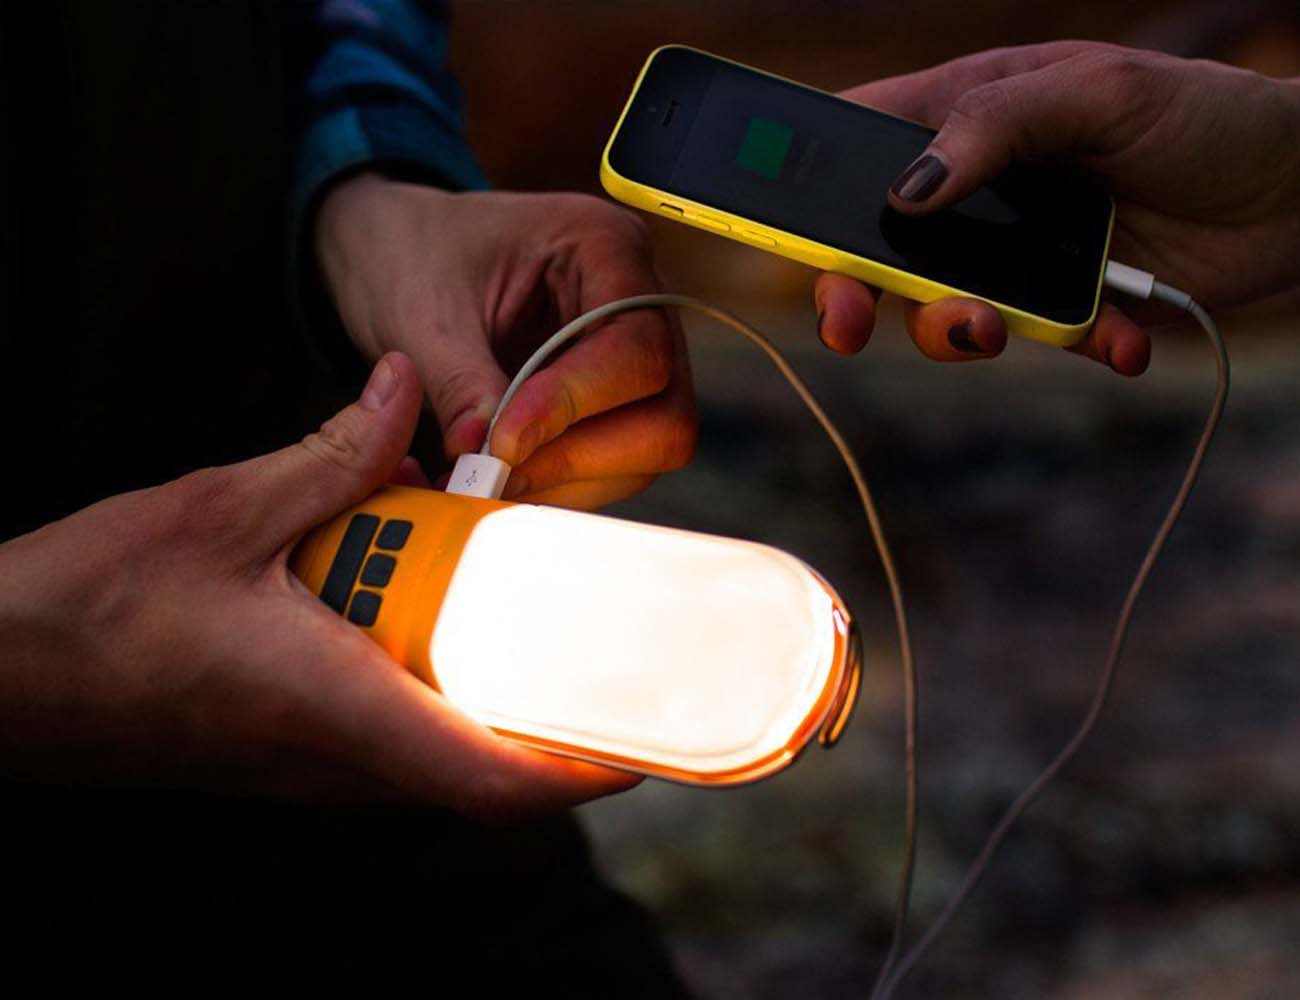 NanoGrid – Lighting & Charging Hub by BioLite